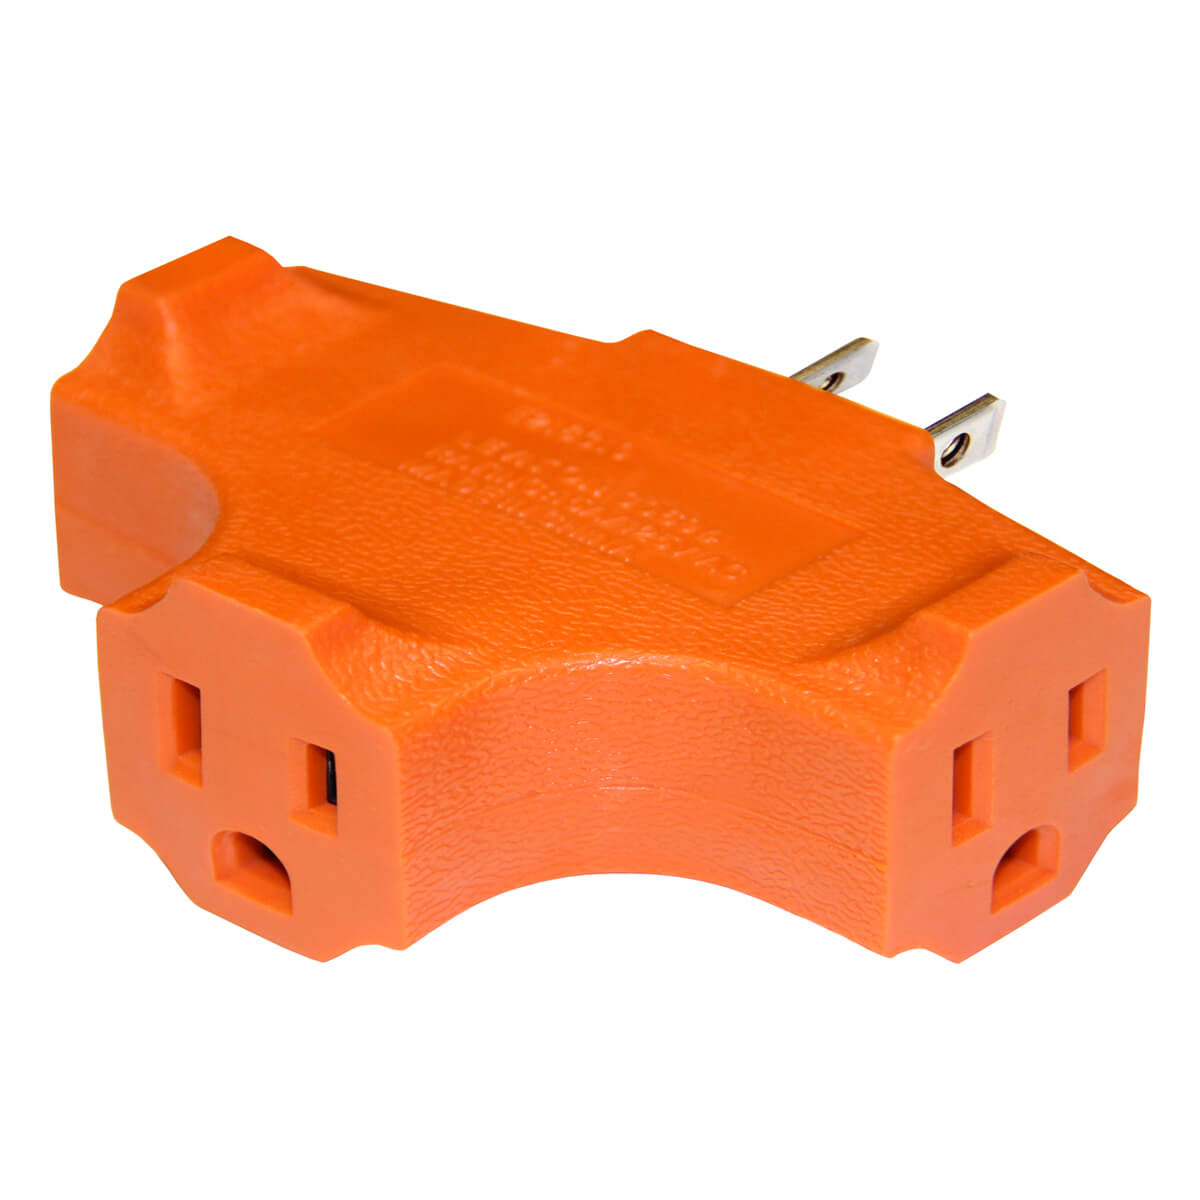 Leviton Heavy Duty Grounded Triple Outlet Adapter  - 0694-740